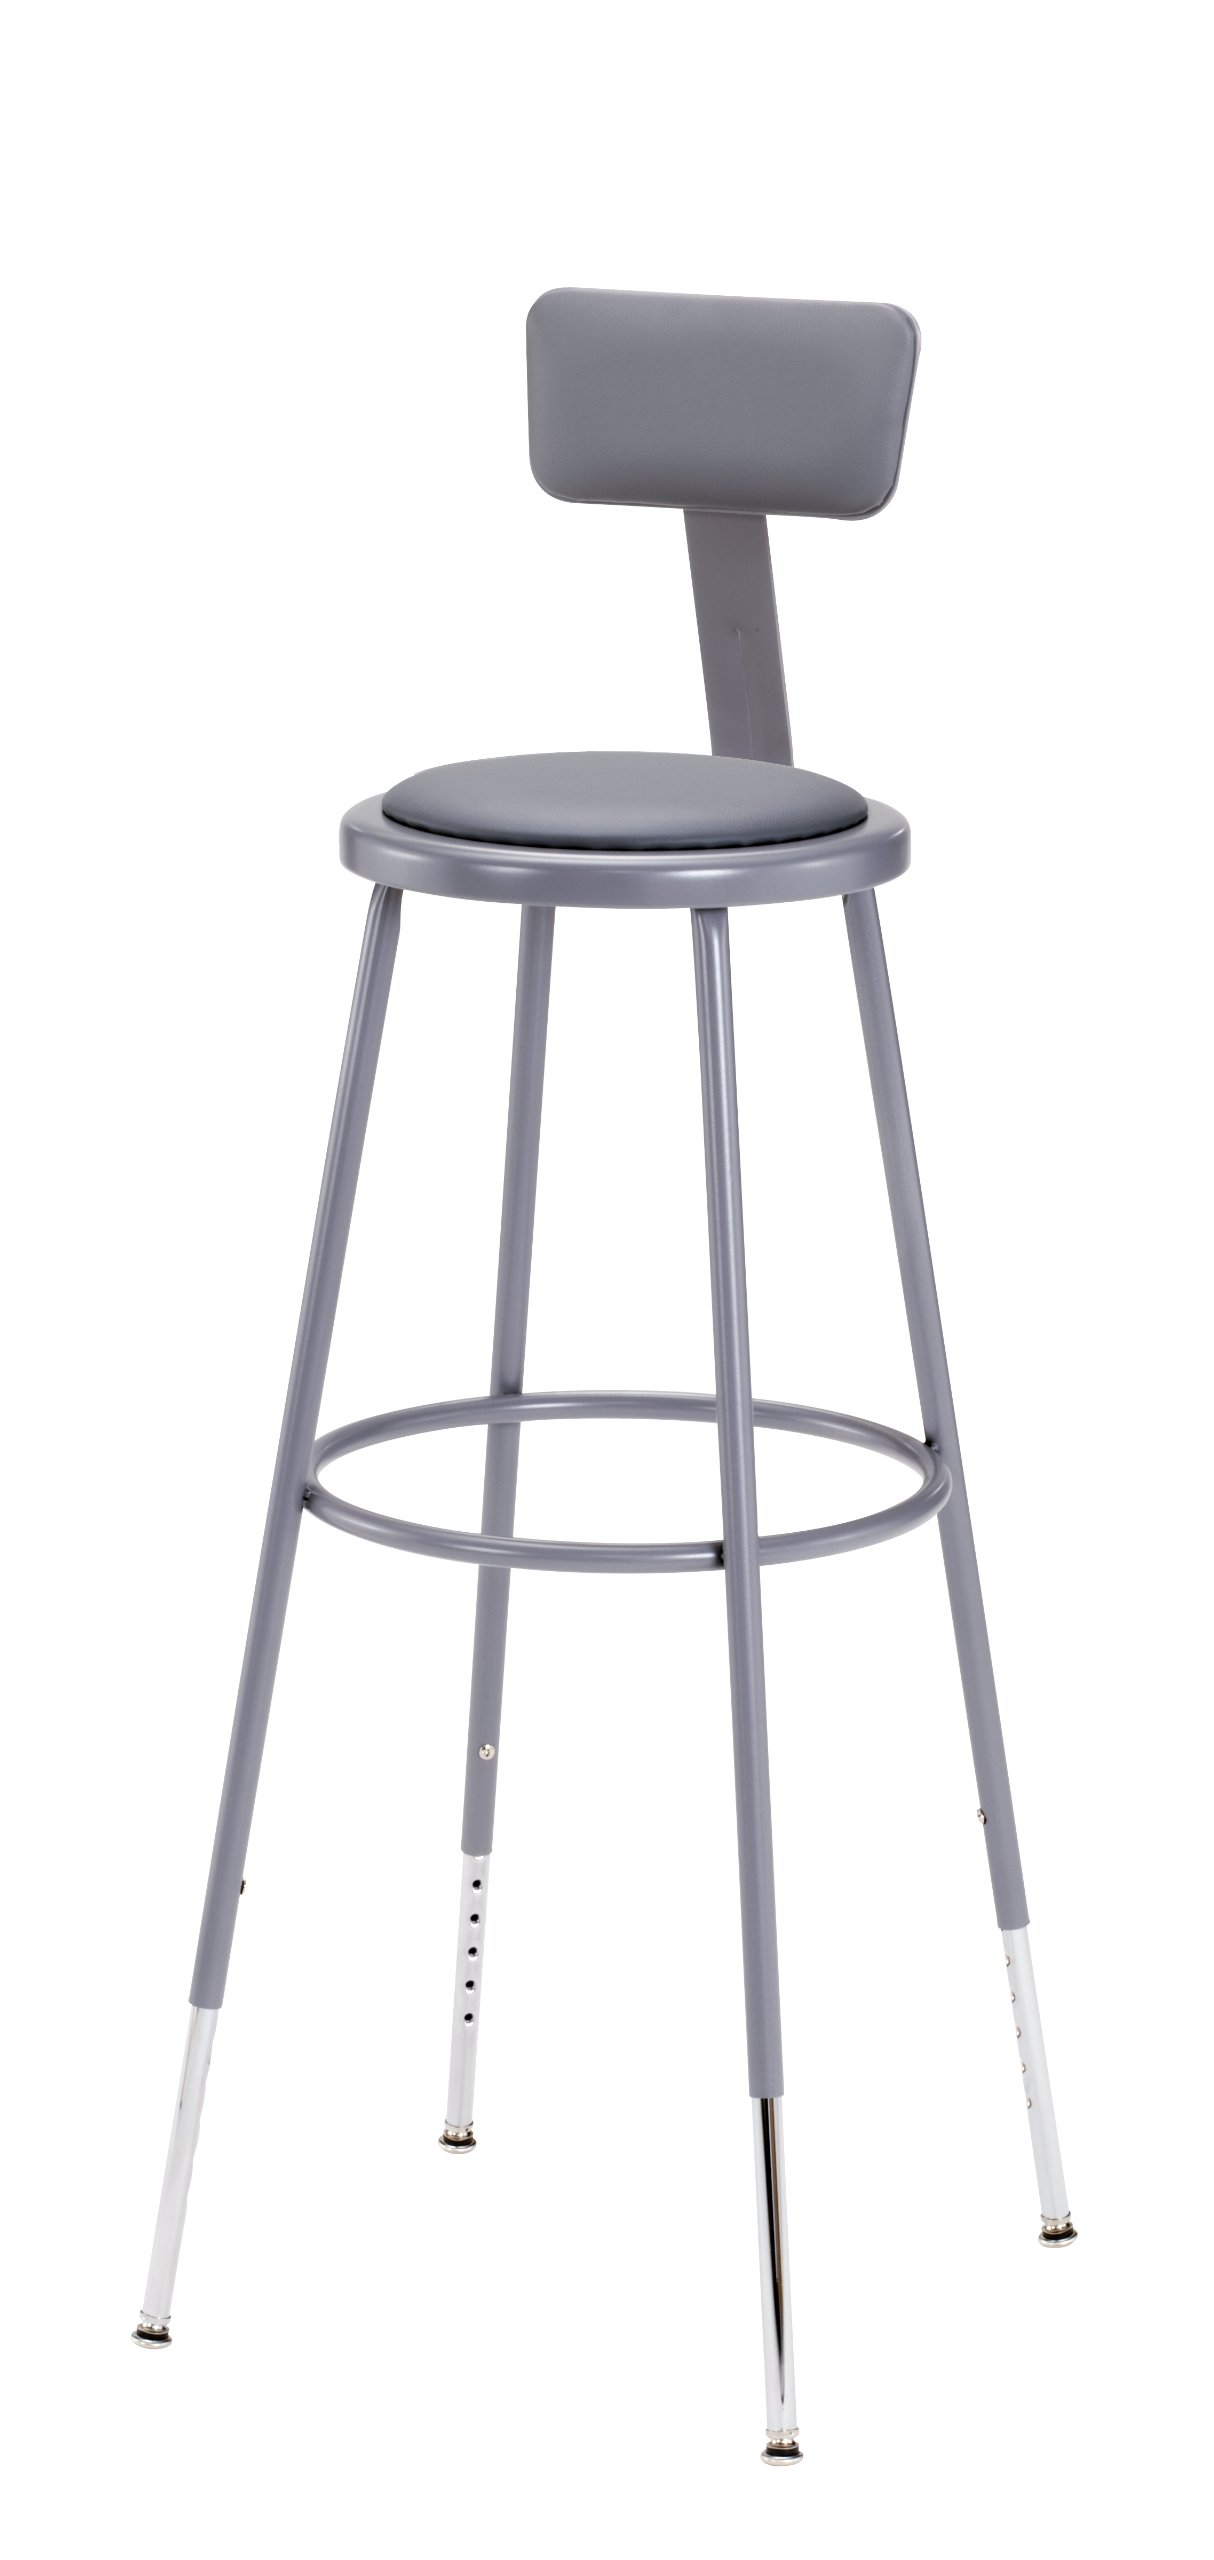 National Public Seating 6430HB Steel Stool with Vinyl Upholstered Seat Adjustable and Backrest, 31''-39'', Grey